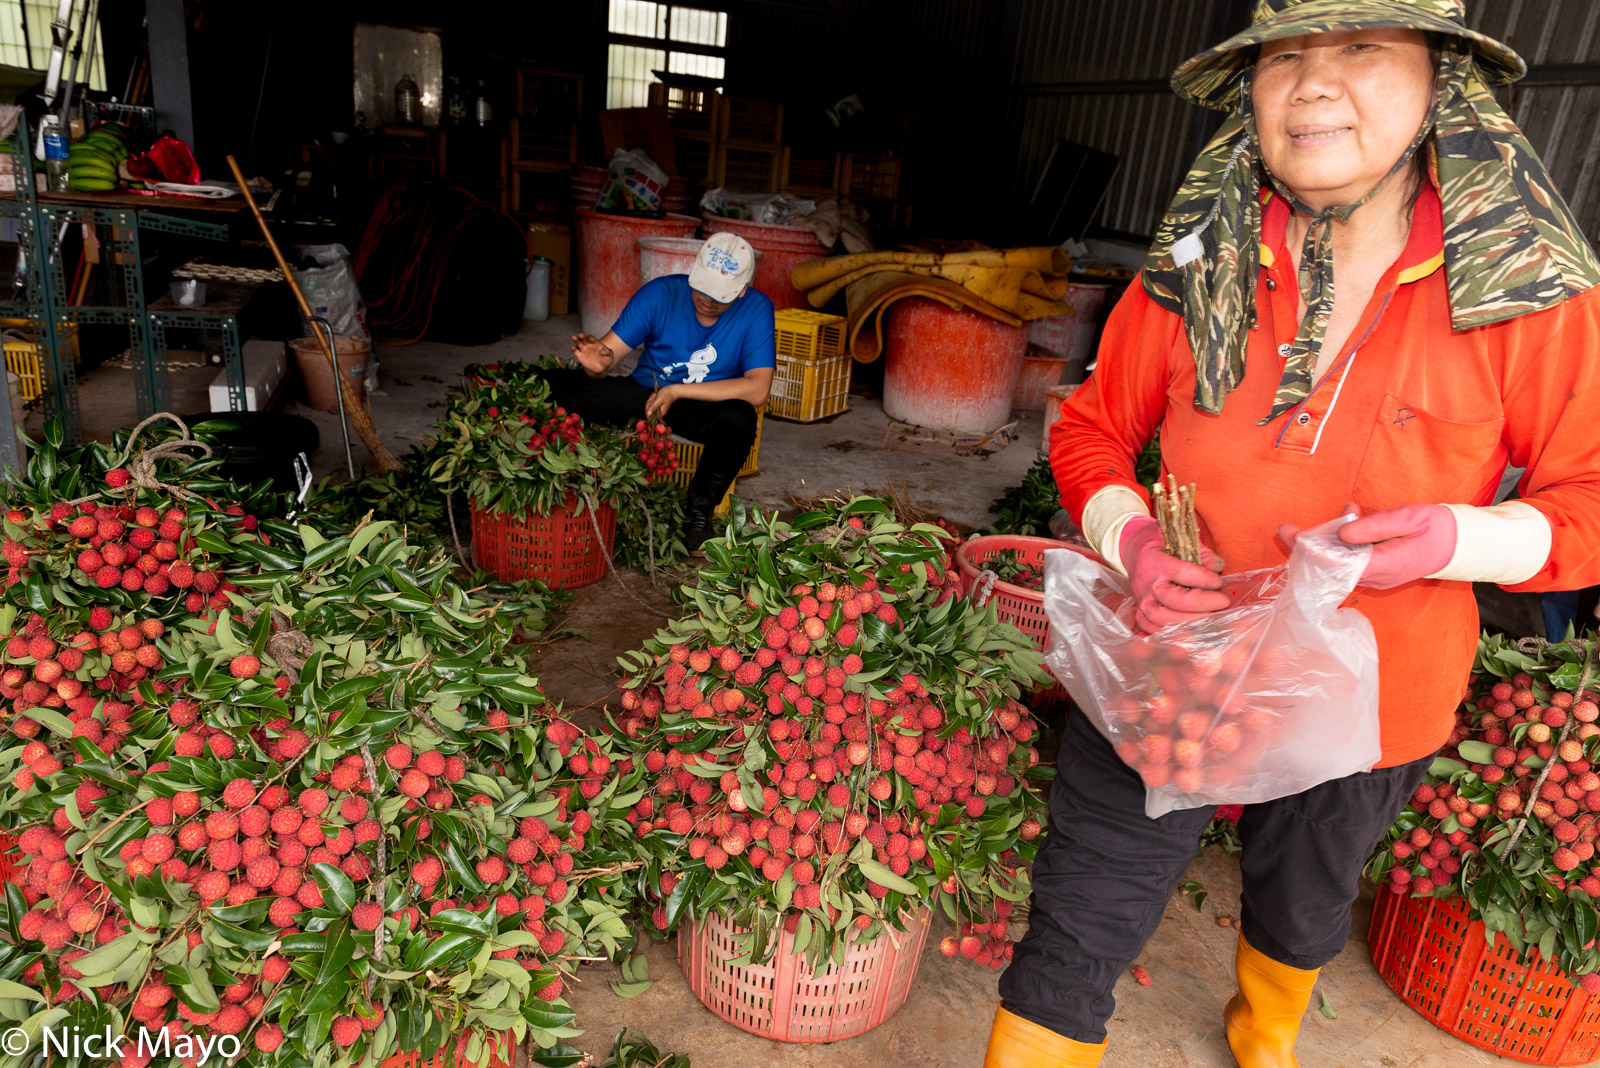 Lychee farmers processing their recently harvested crop at Fanlu in Chaiyi County.